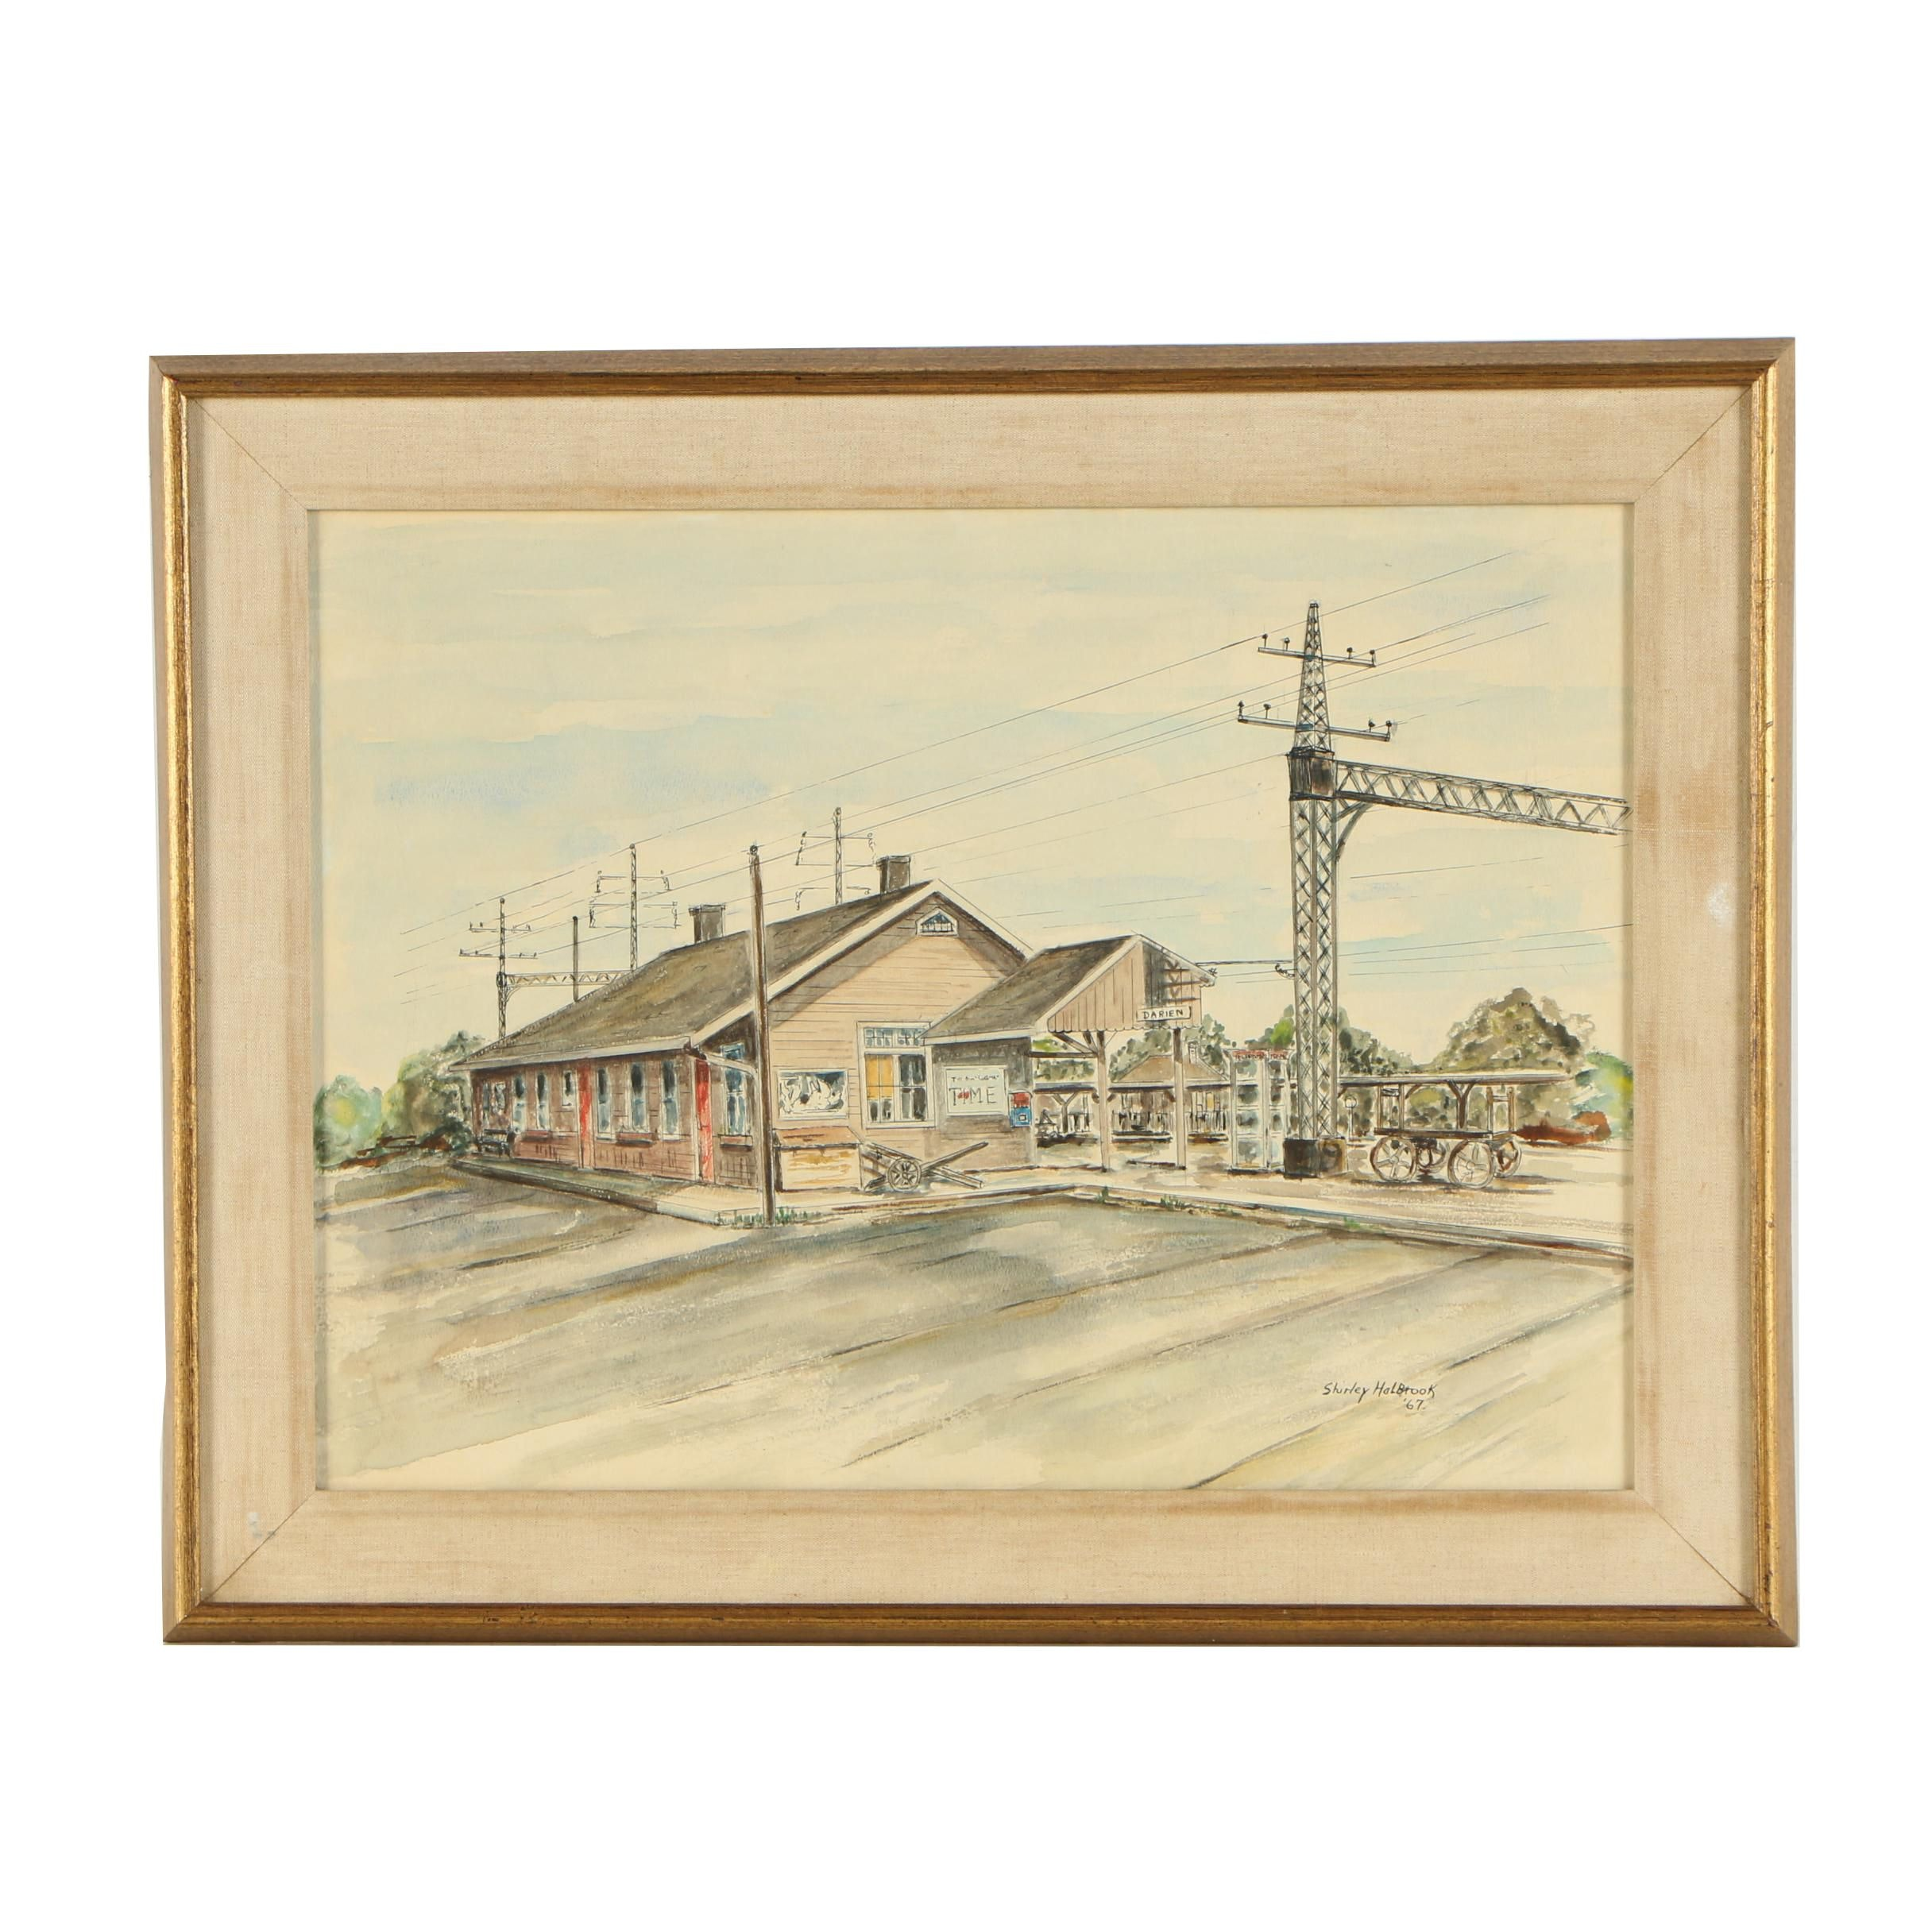 Shirley Holbrook 1967 Watercolor and Gouache Painting of Train Station